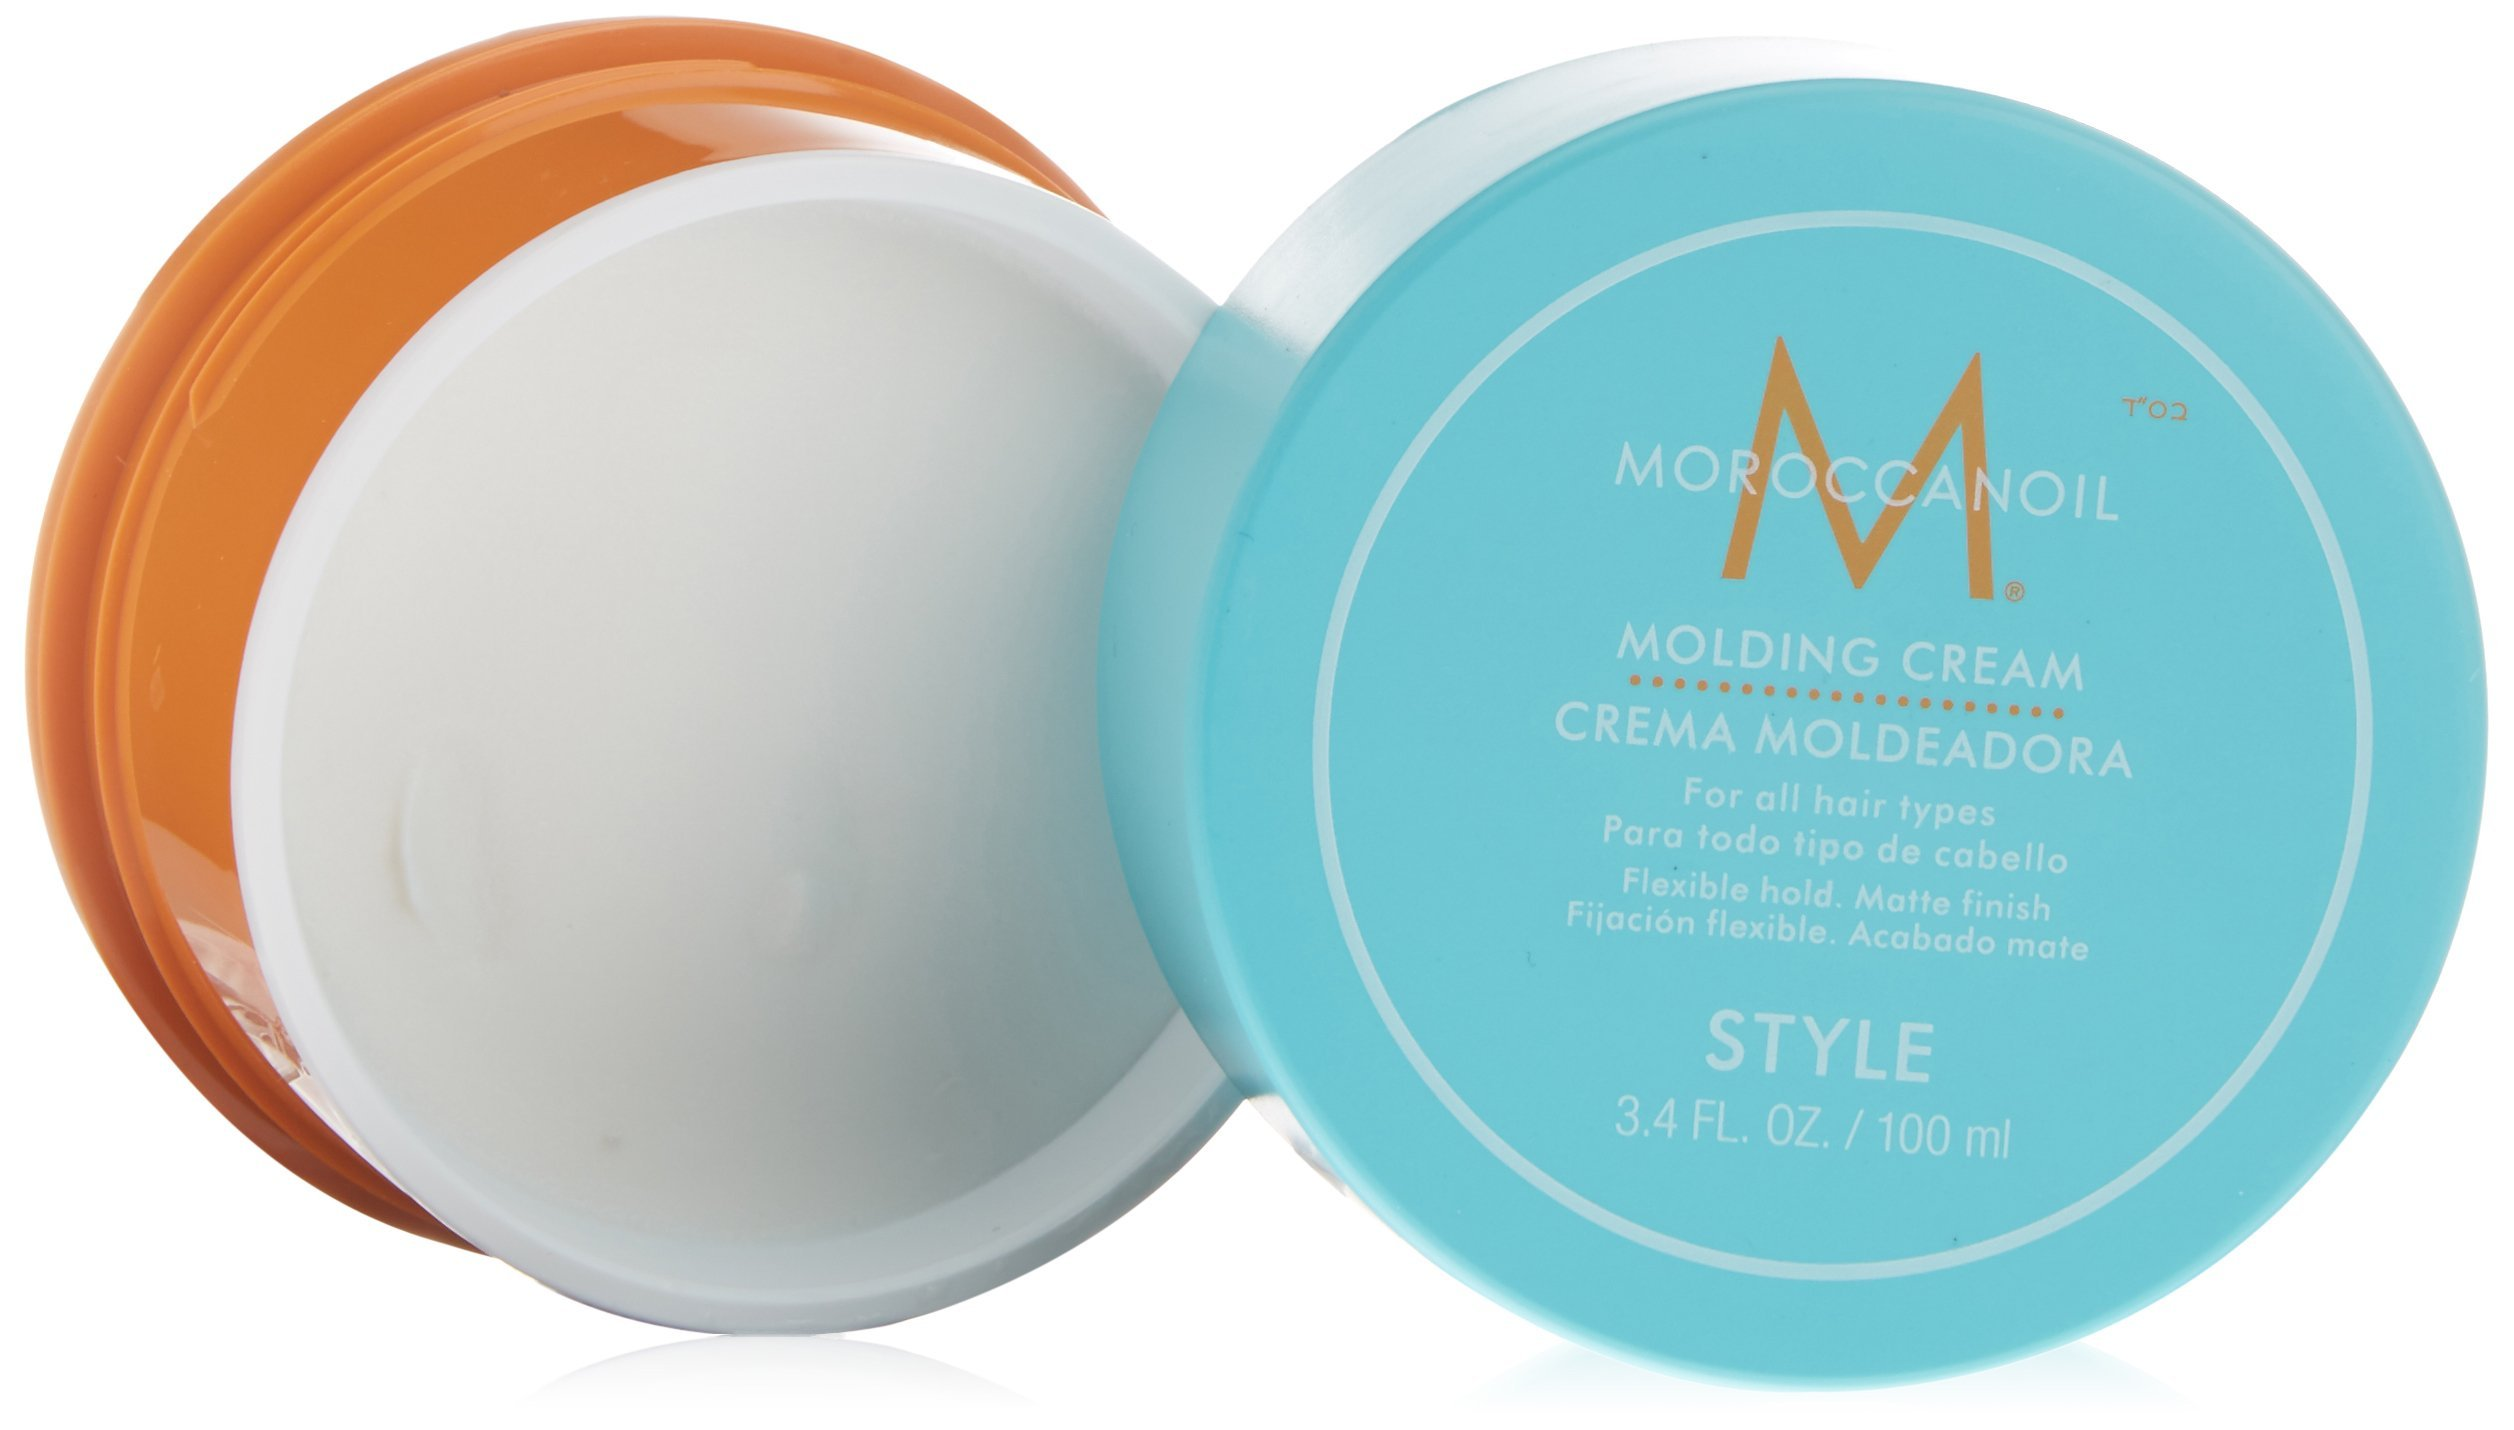 Moroccan Oil Molding Cream, 3.4 Ounce by MOROCCANOIL (Image #1)